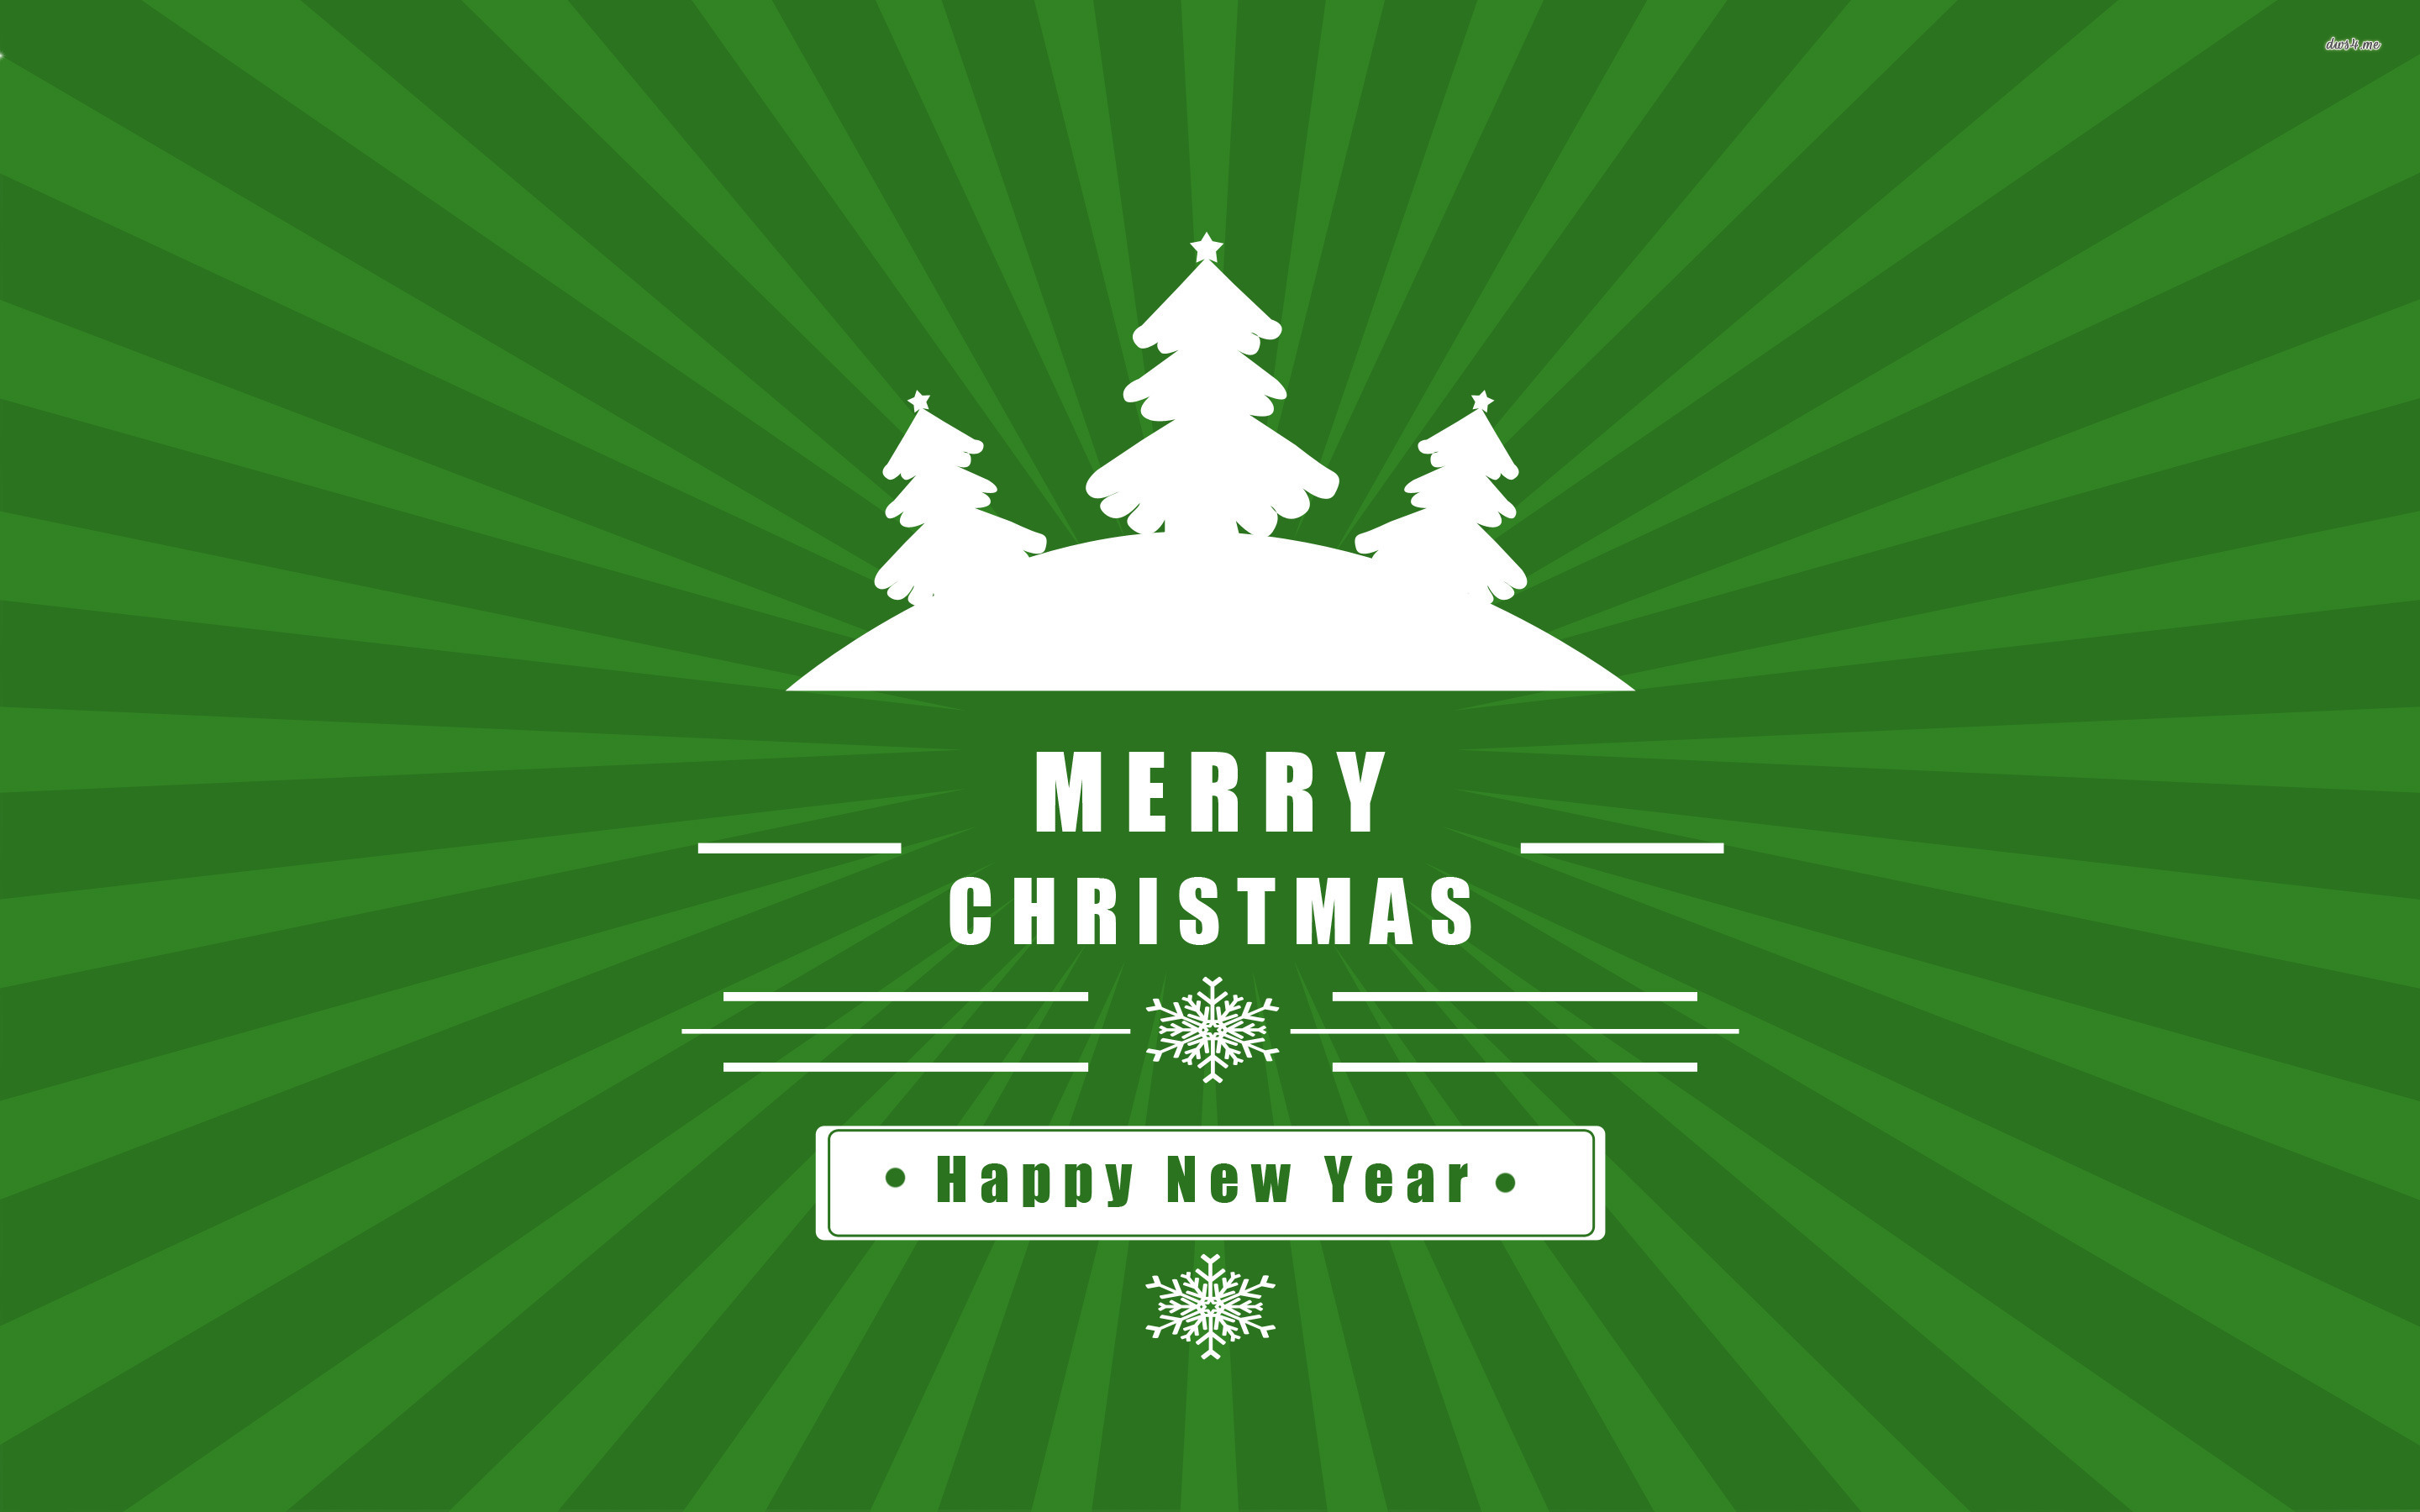 Merry Christmas And Happy New Year Wallpaper - Illustration , HD Wallpaper & Backgrounds